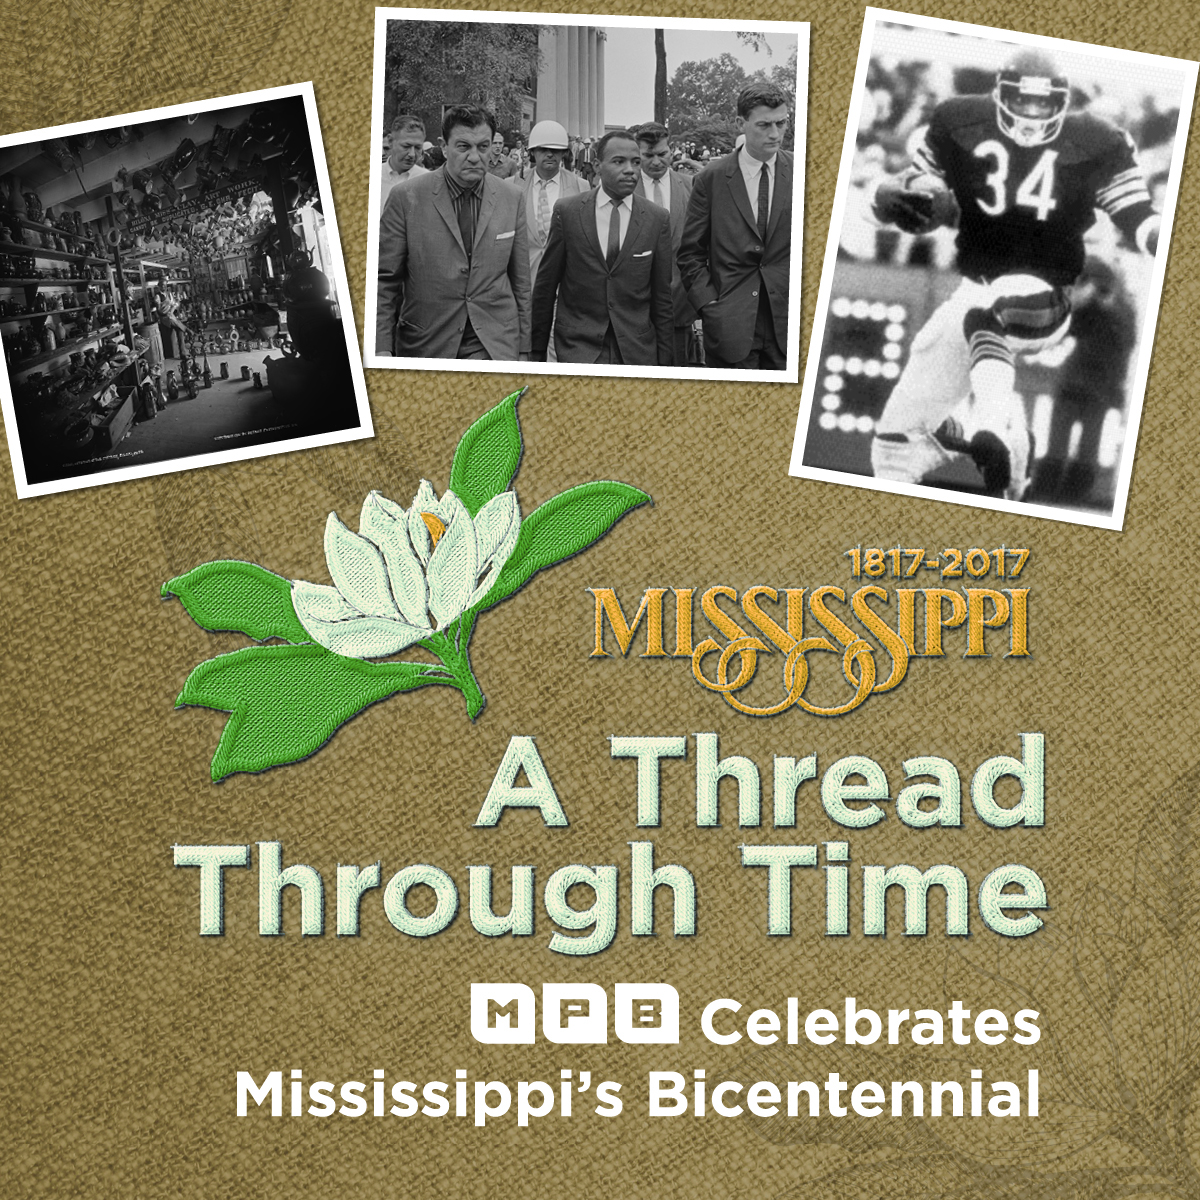 Mississippi A Thread Through Time